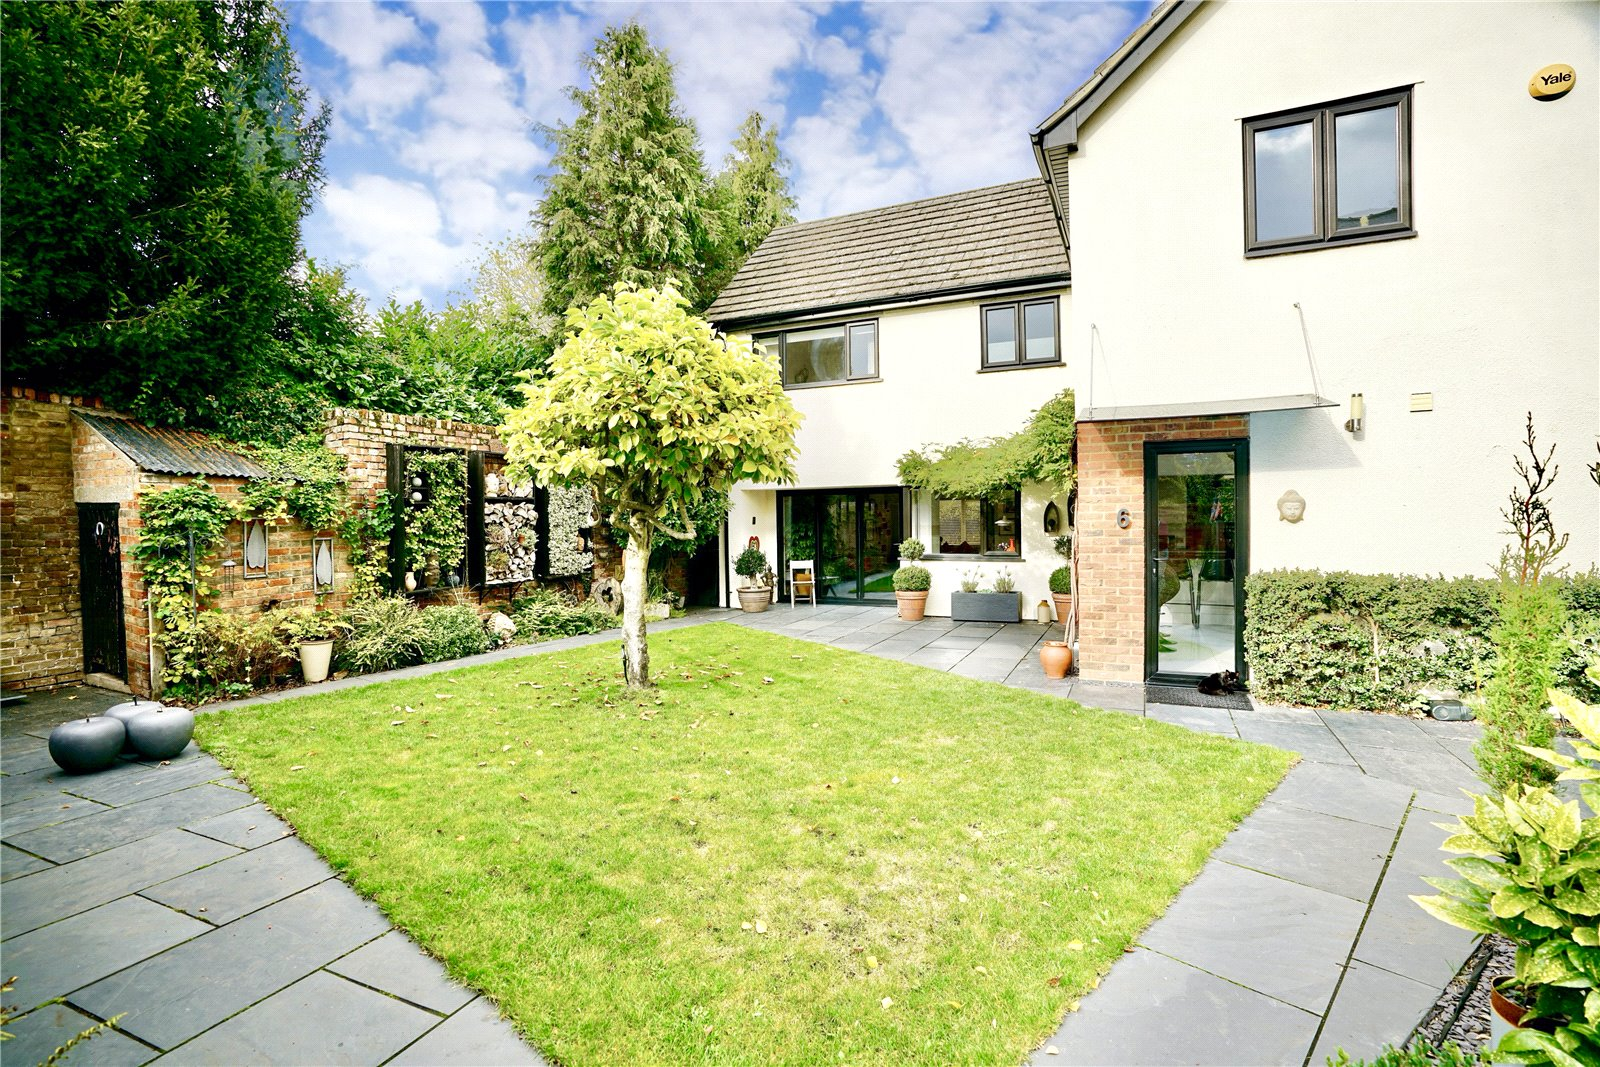 4 bed house for sale in Eaton Socon  - Property Image 3